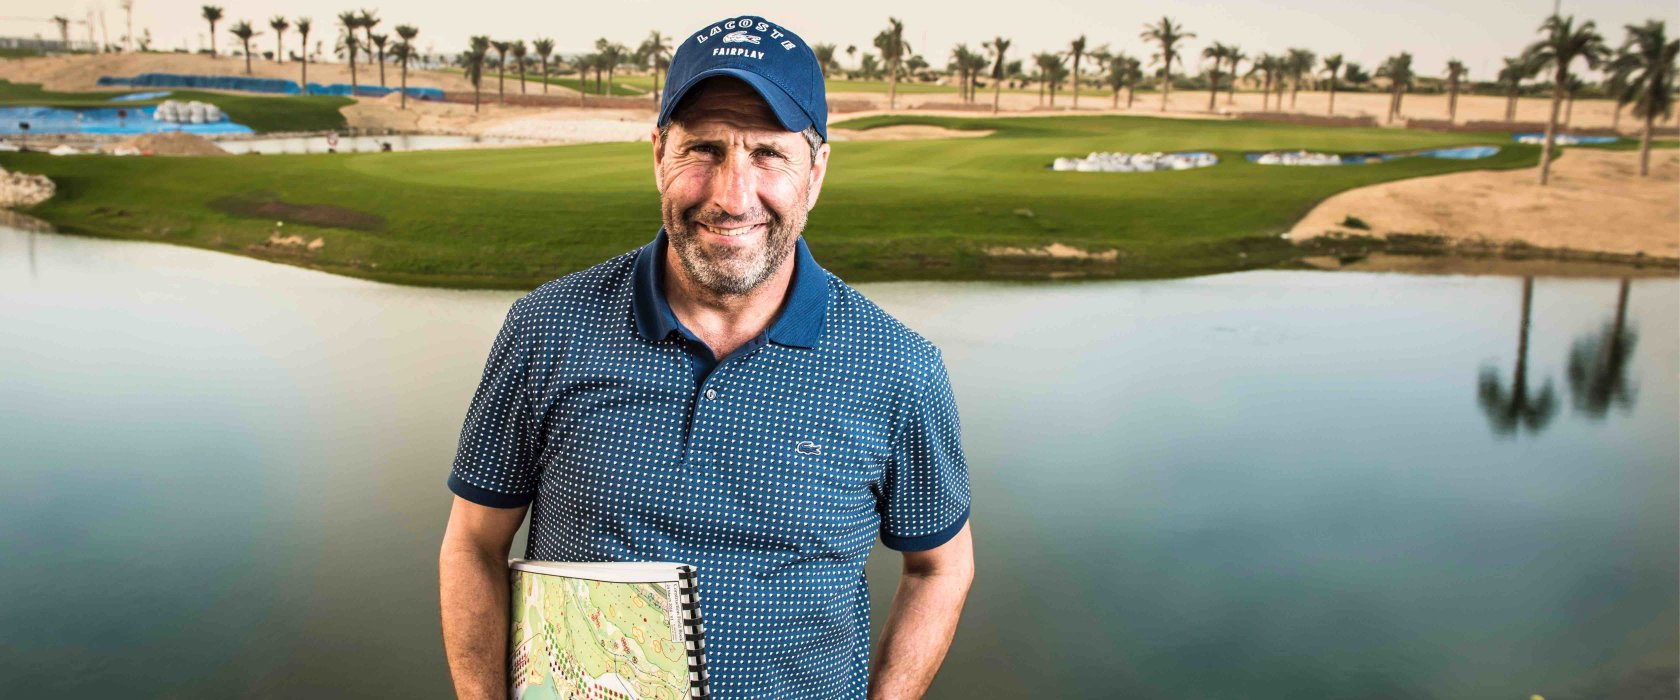 QF's Education City Golf Club is 'extraordinary', says course designer José Maria Olazábal